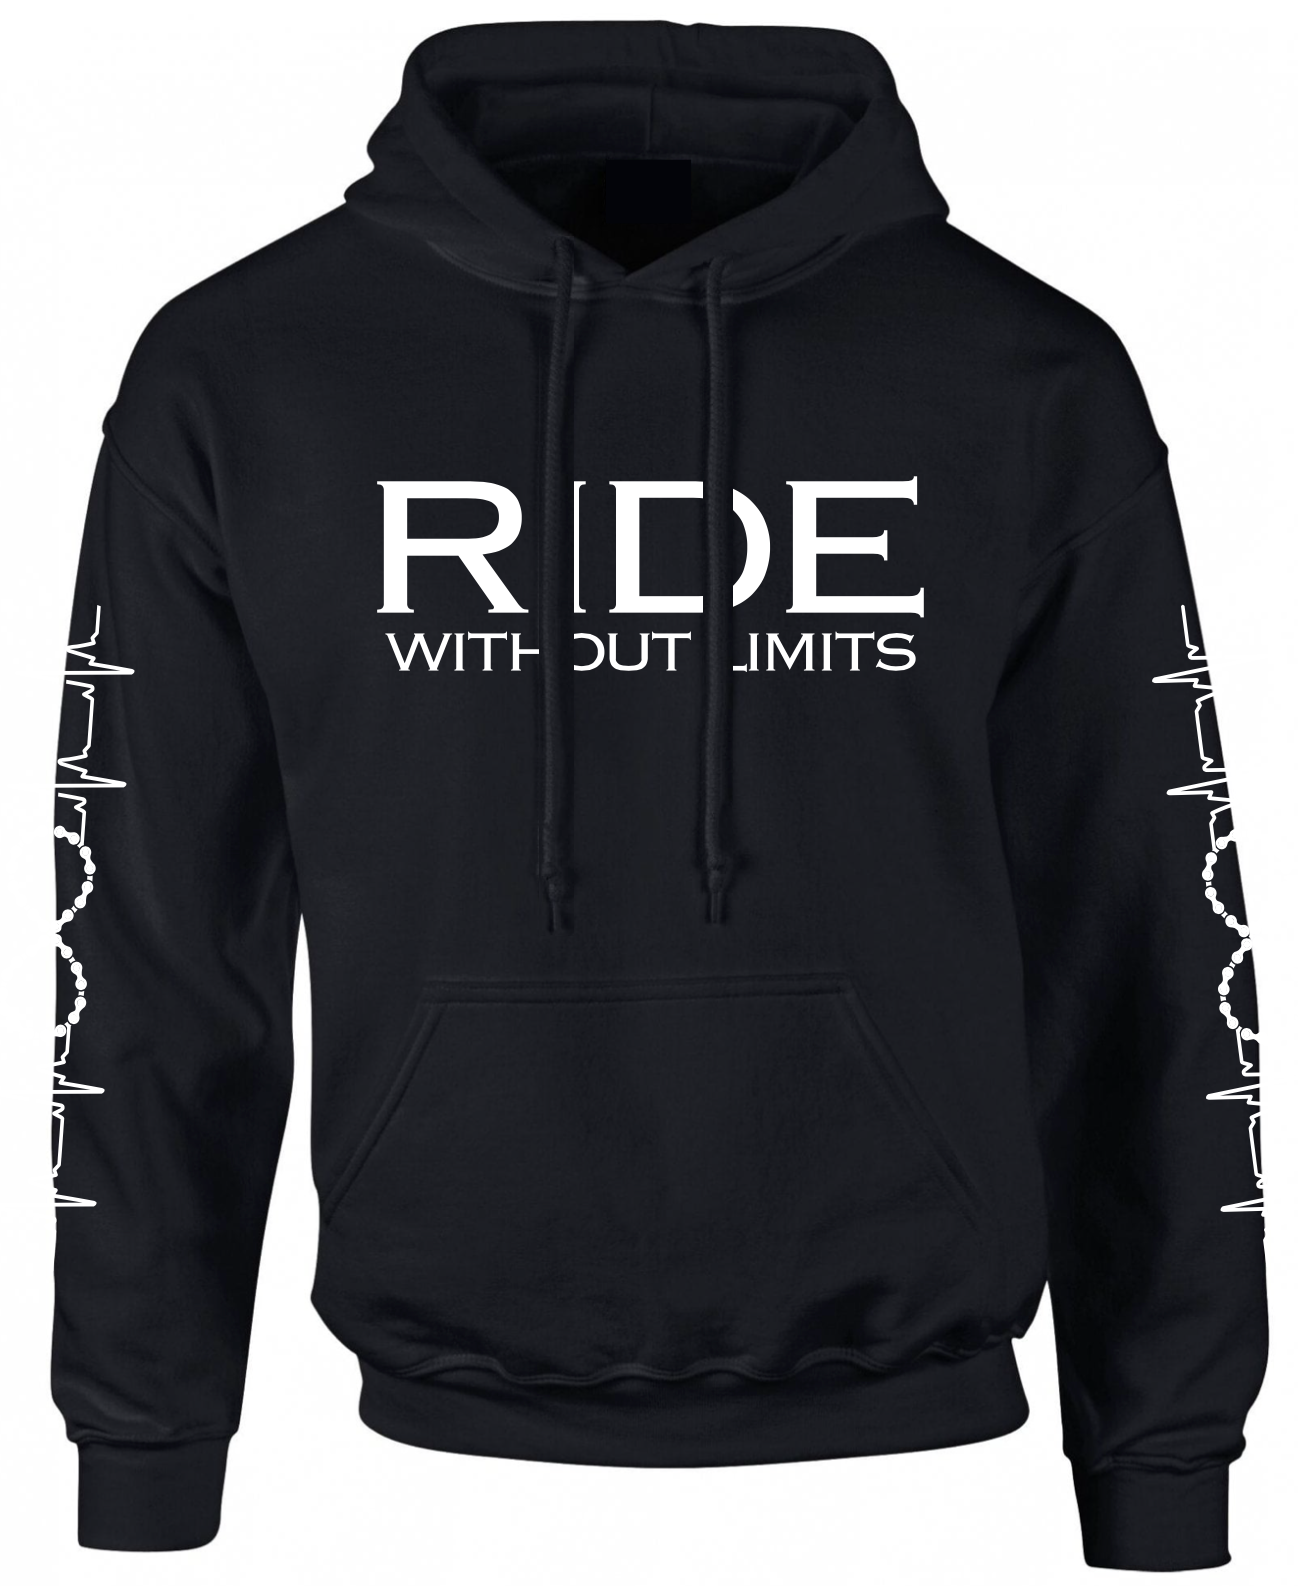 RIDE Without Limits Hoodie W/Sleeves